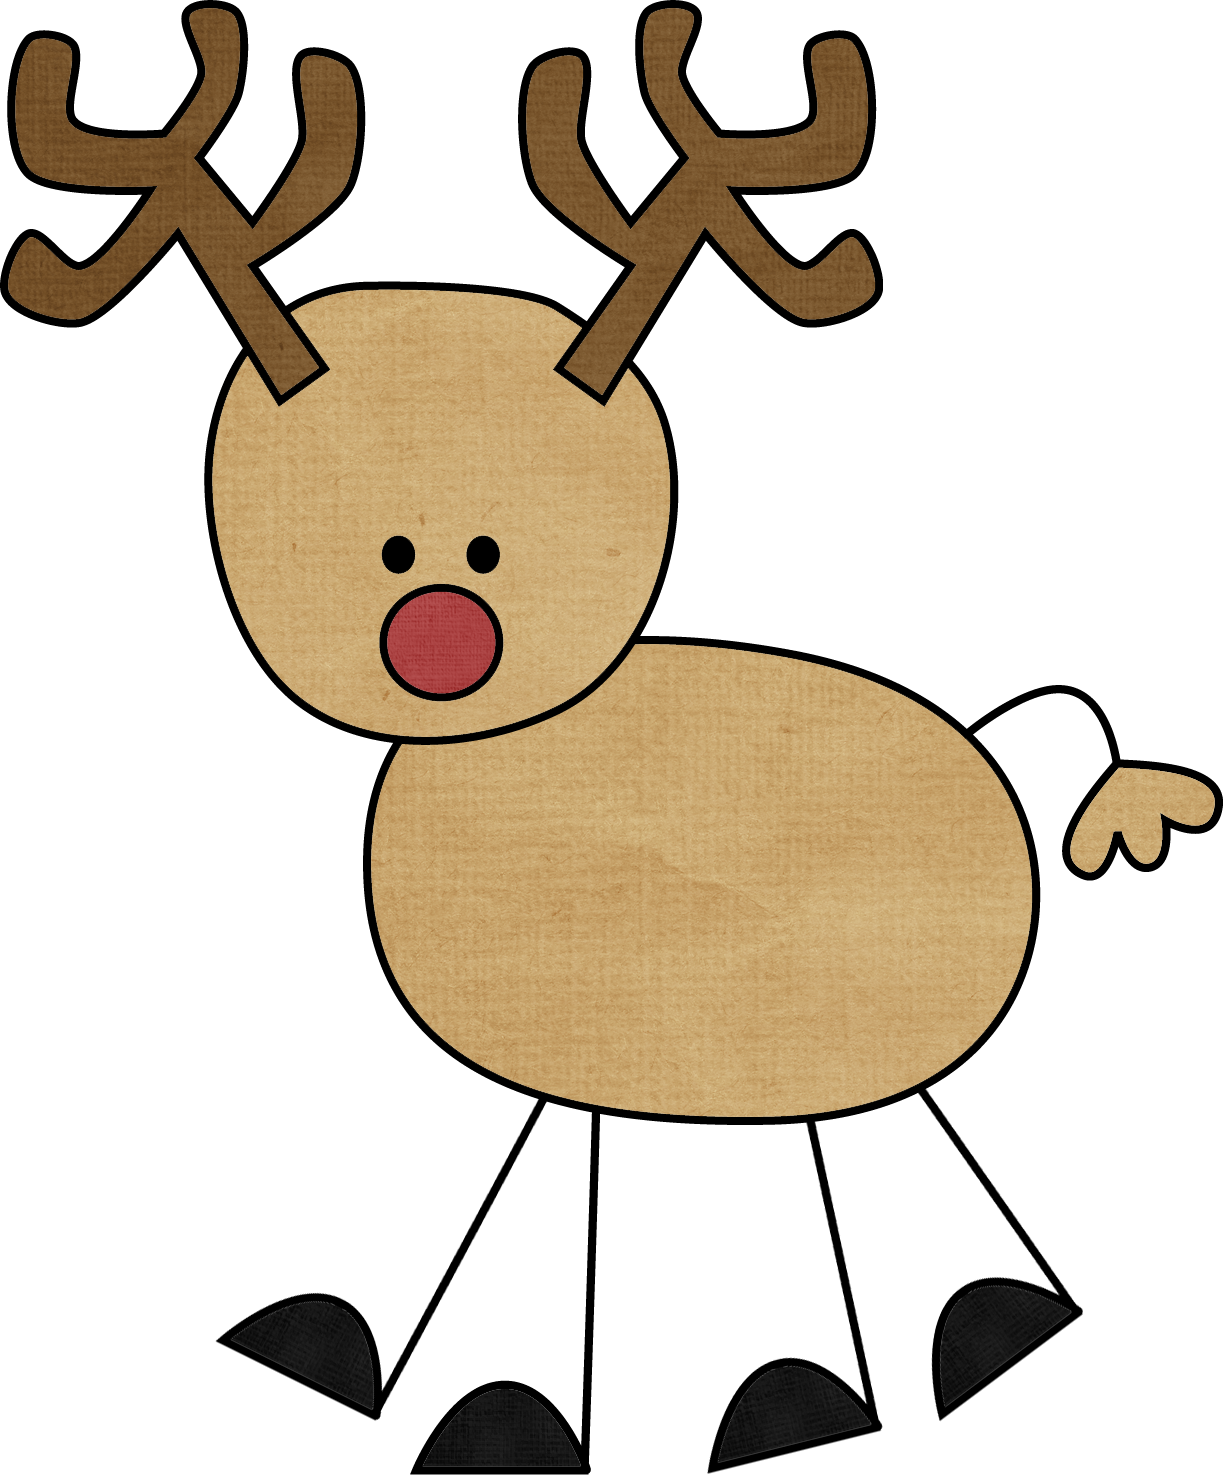 Cartoon at getdrawings com. Reindeer clipart simple clipart freeuse